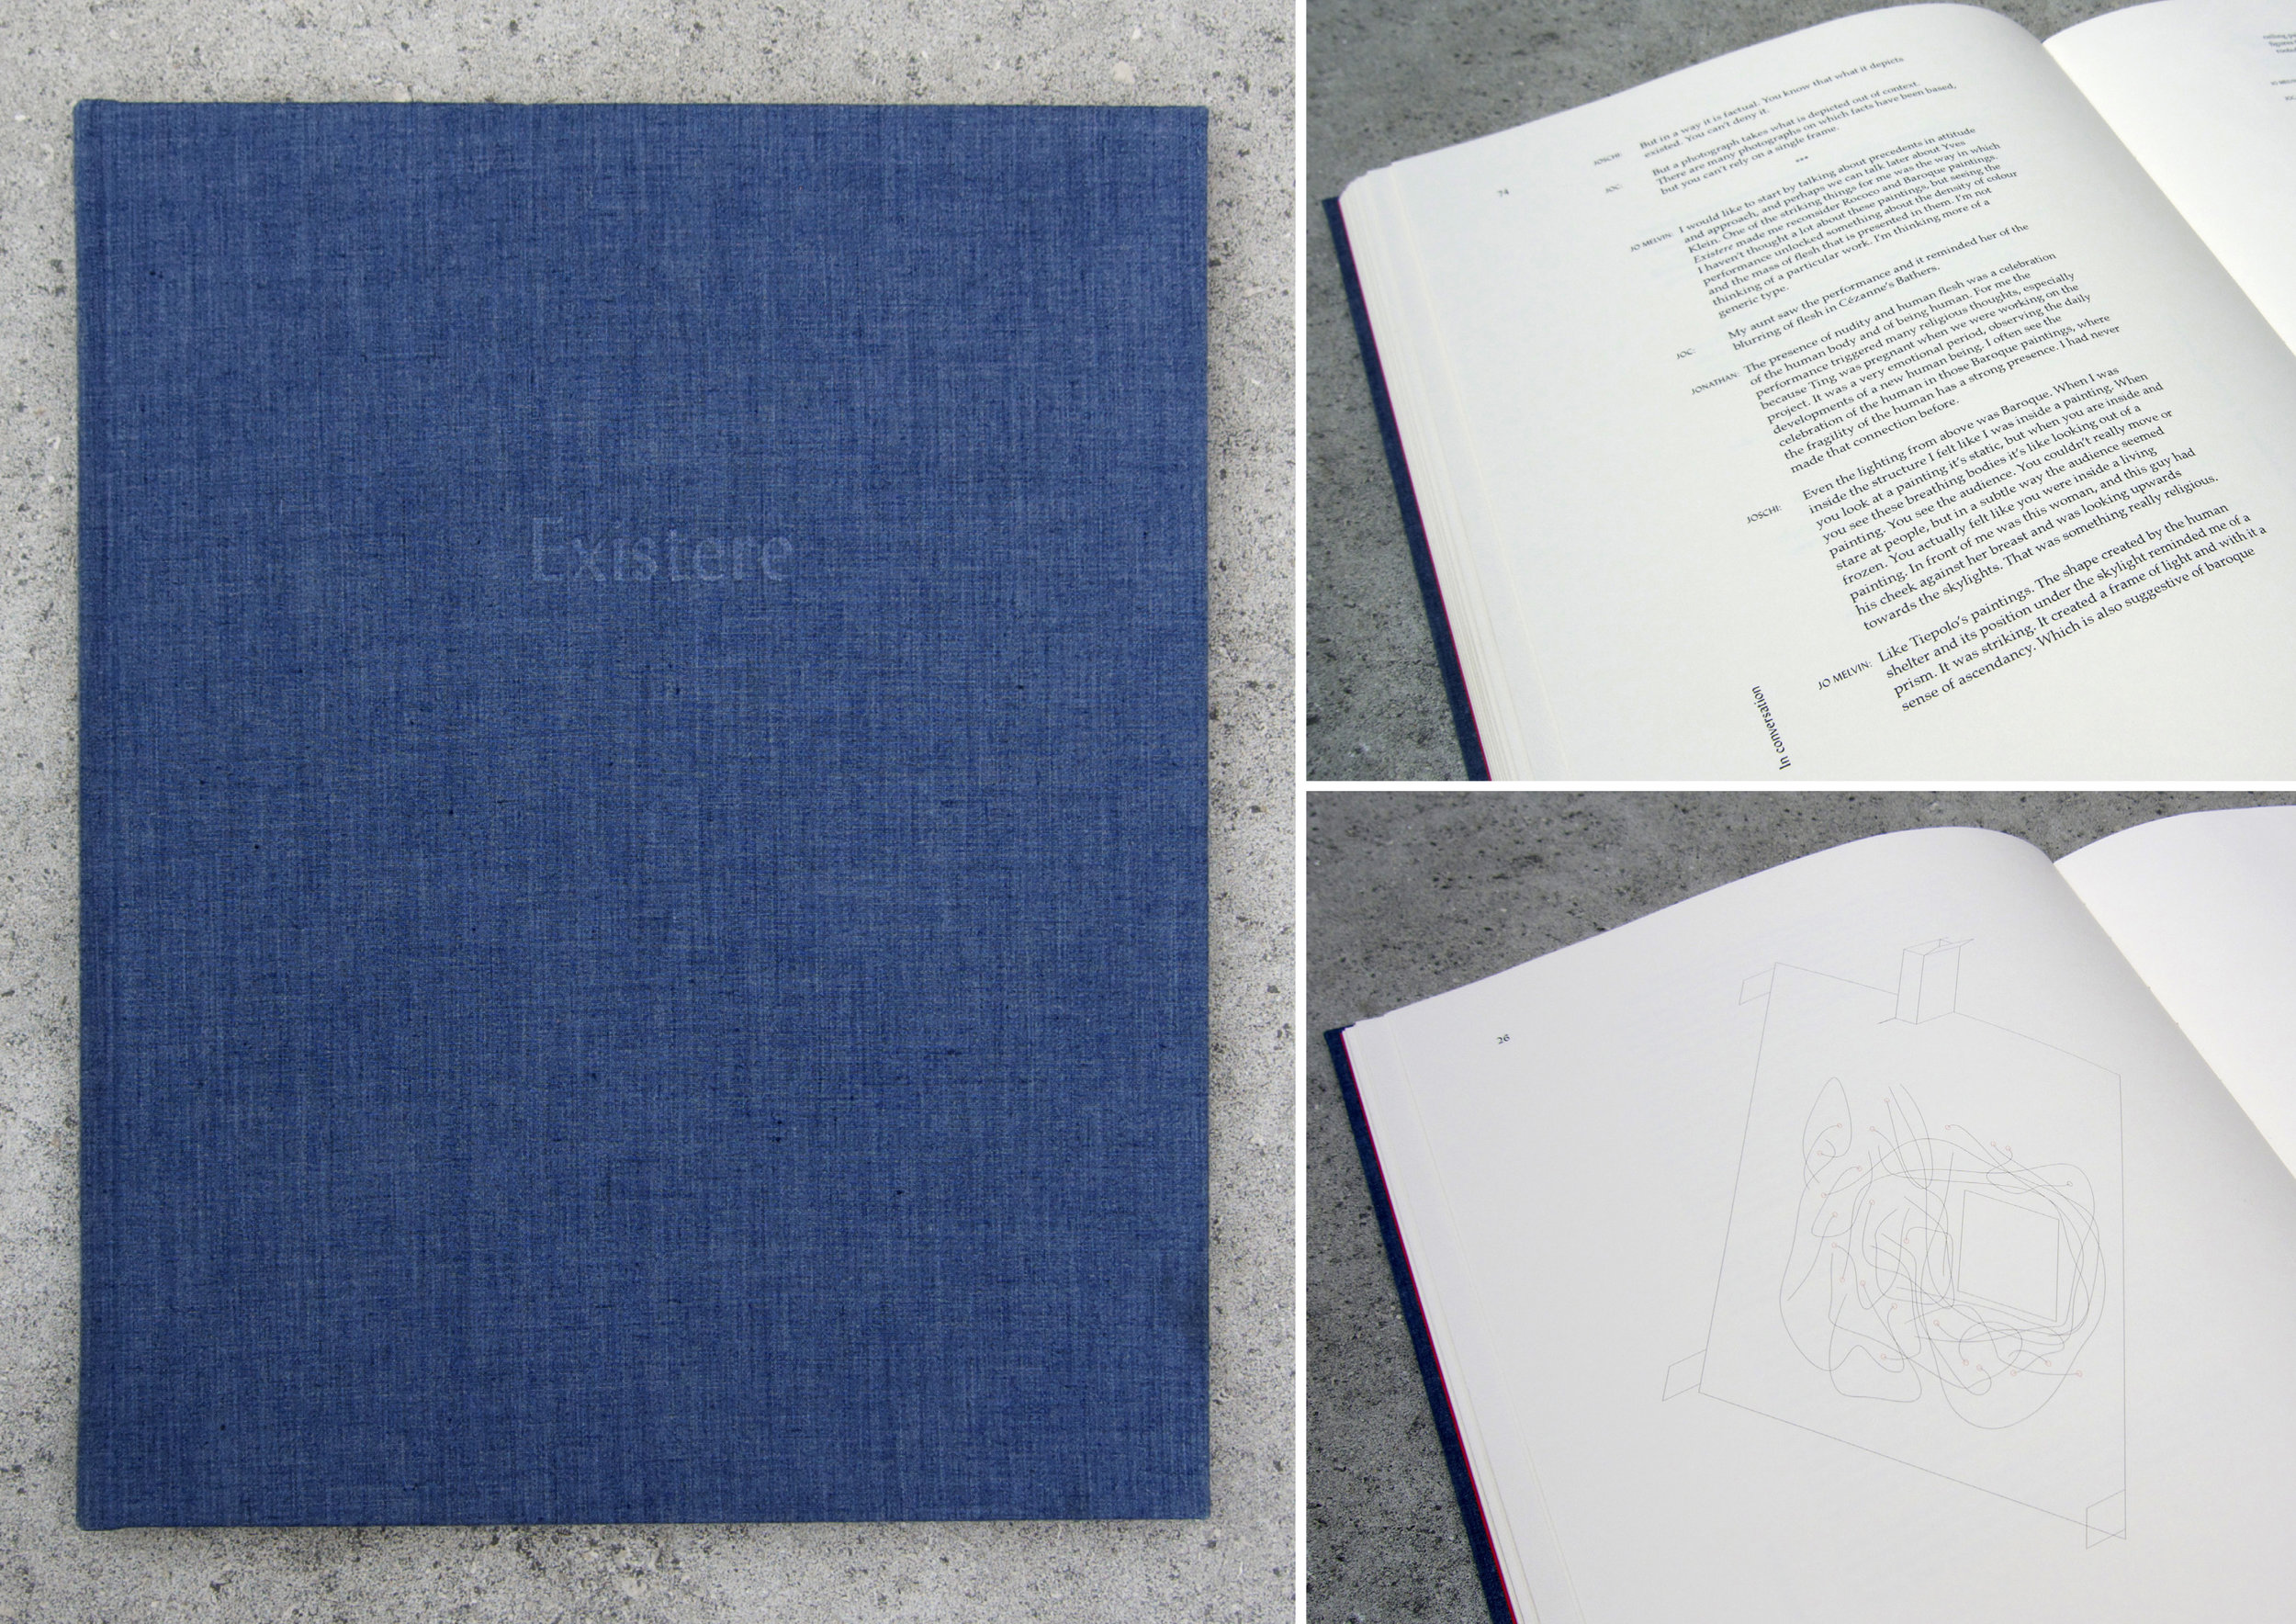 Existere Book, fabric and paper, 2012